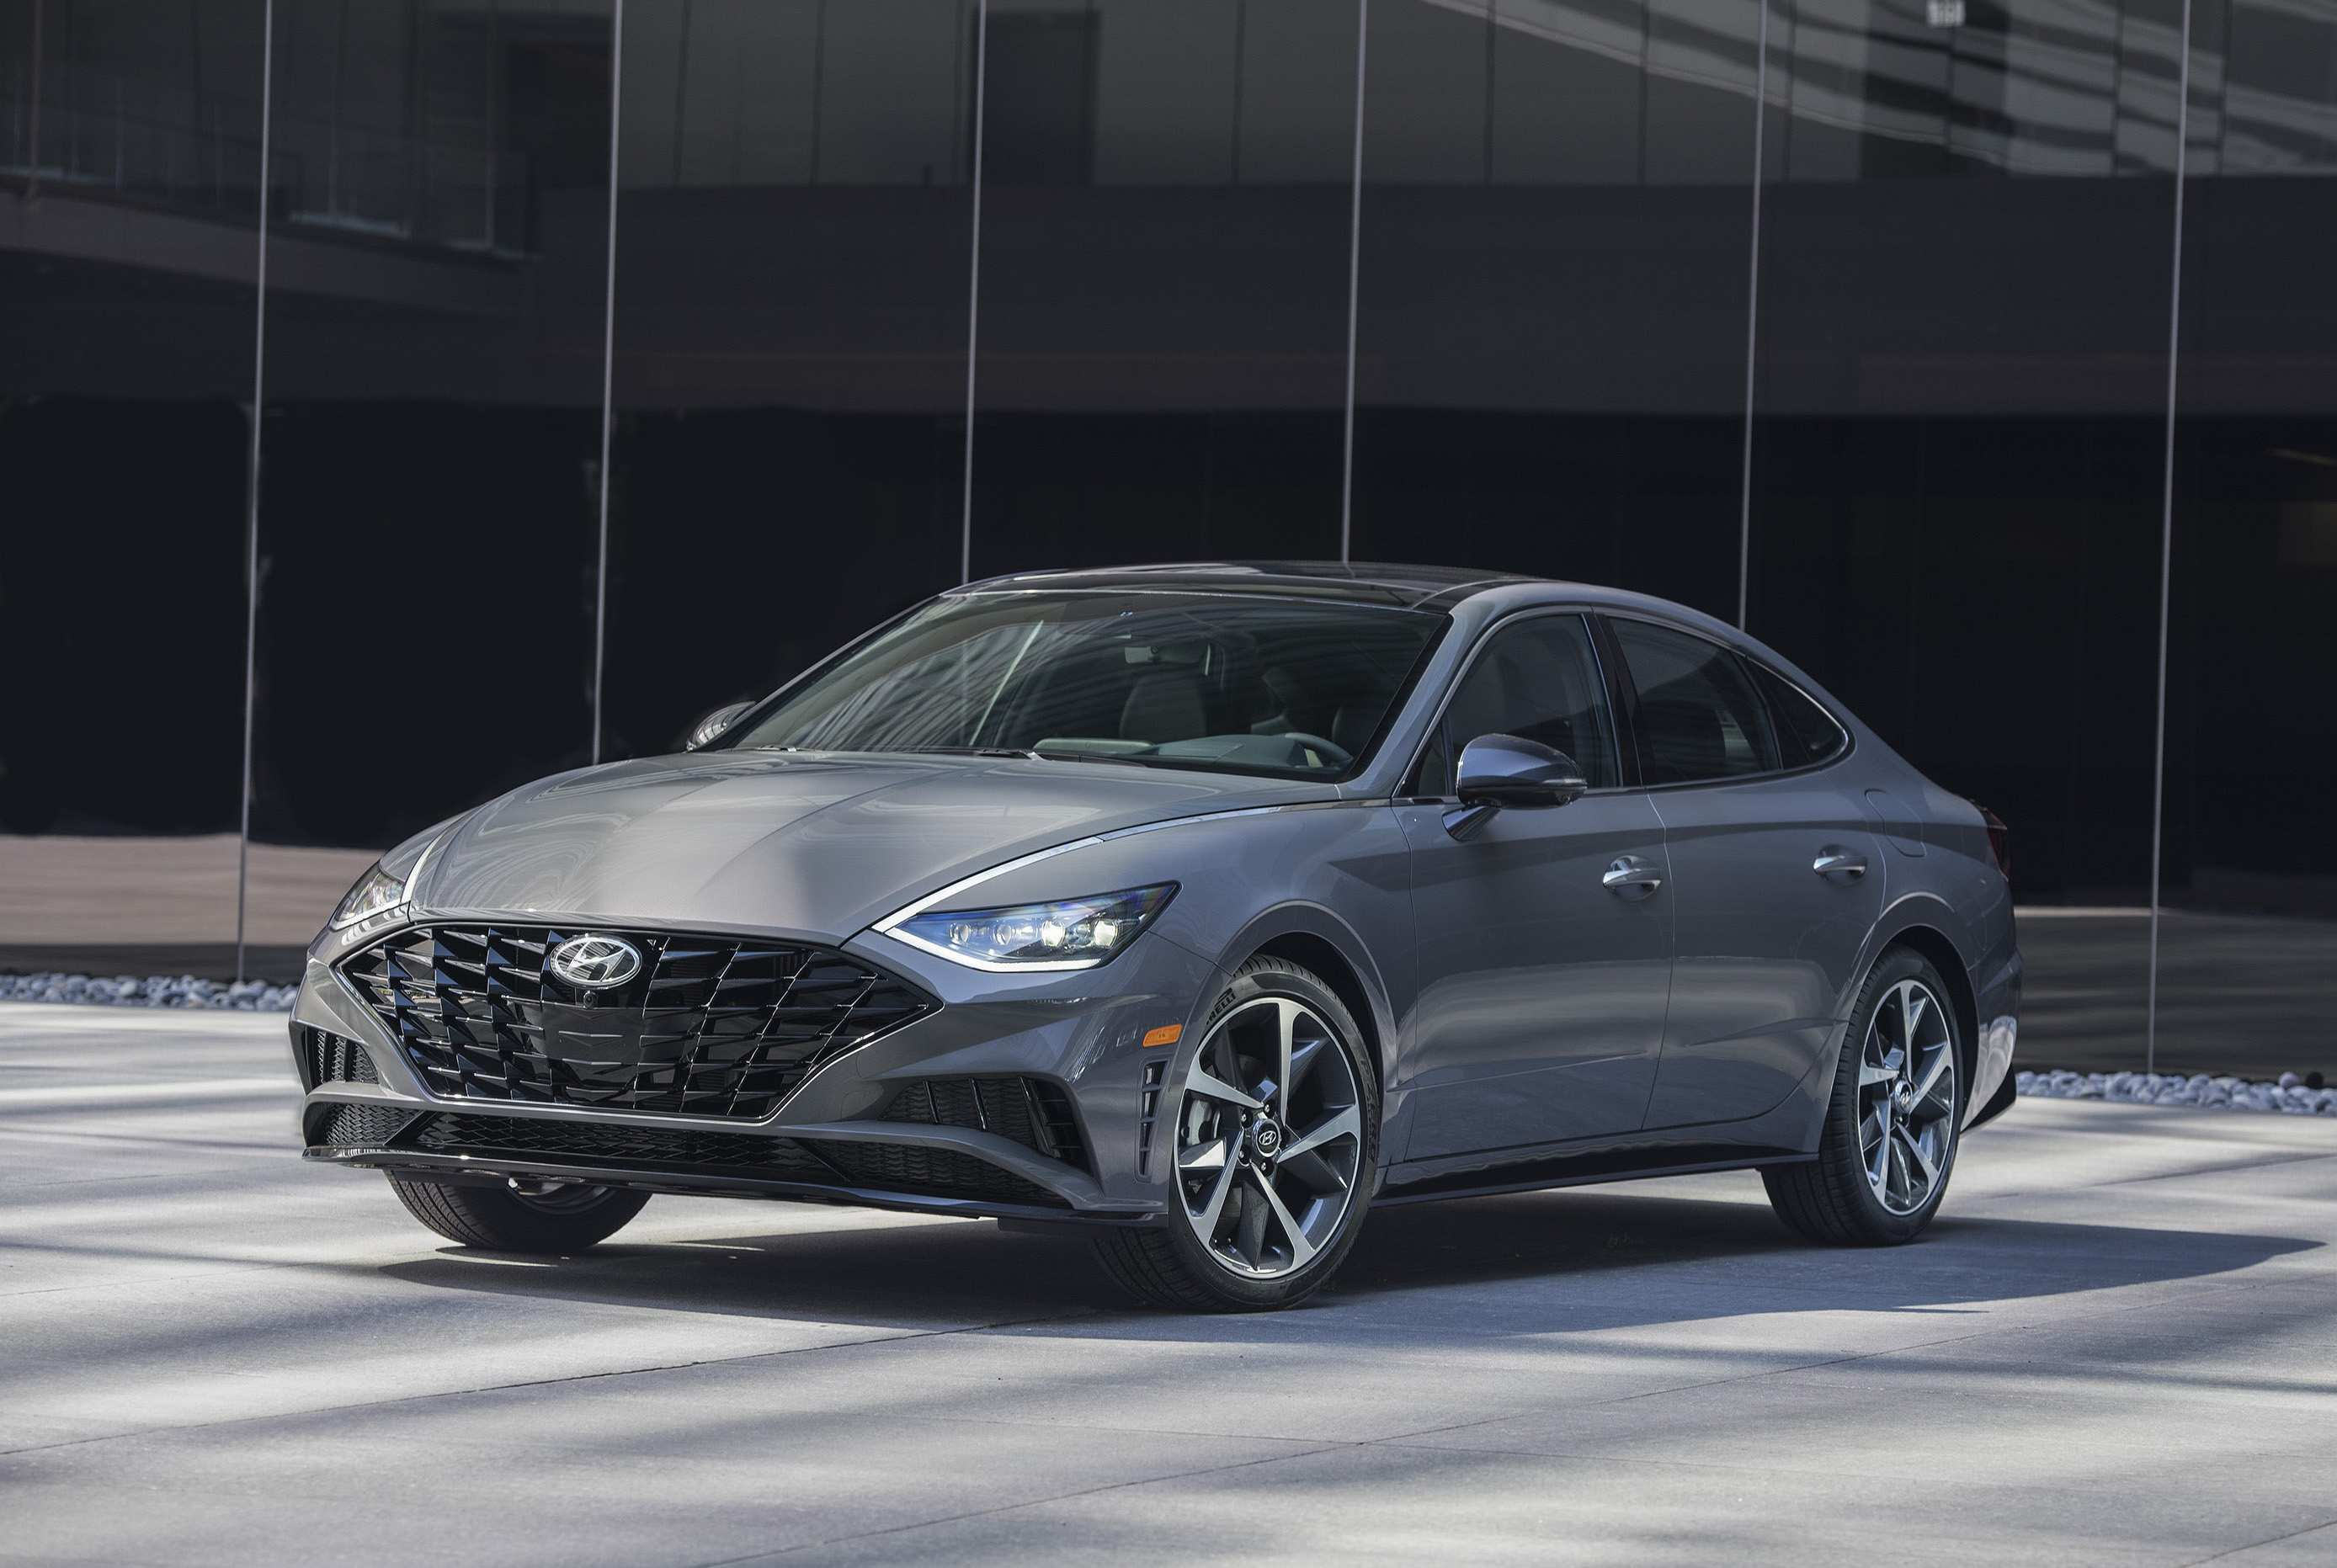 30 Concept of Pictures Of The 2020 Hyundai Sonata Performance with Pictures Of The 2020 Hyundai Sonata